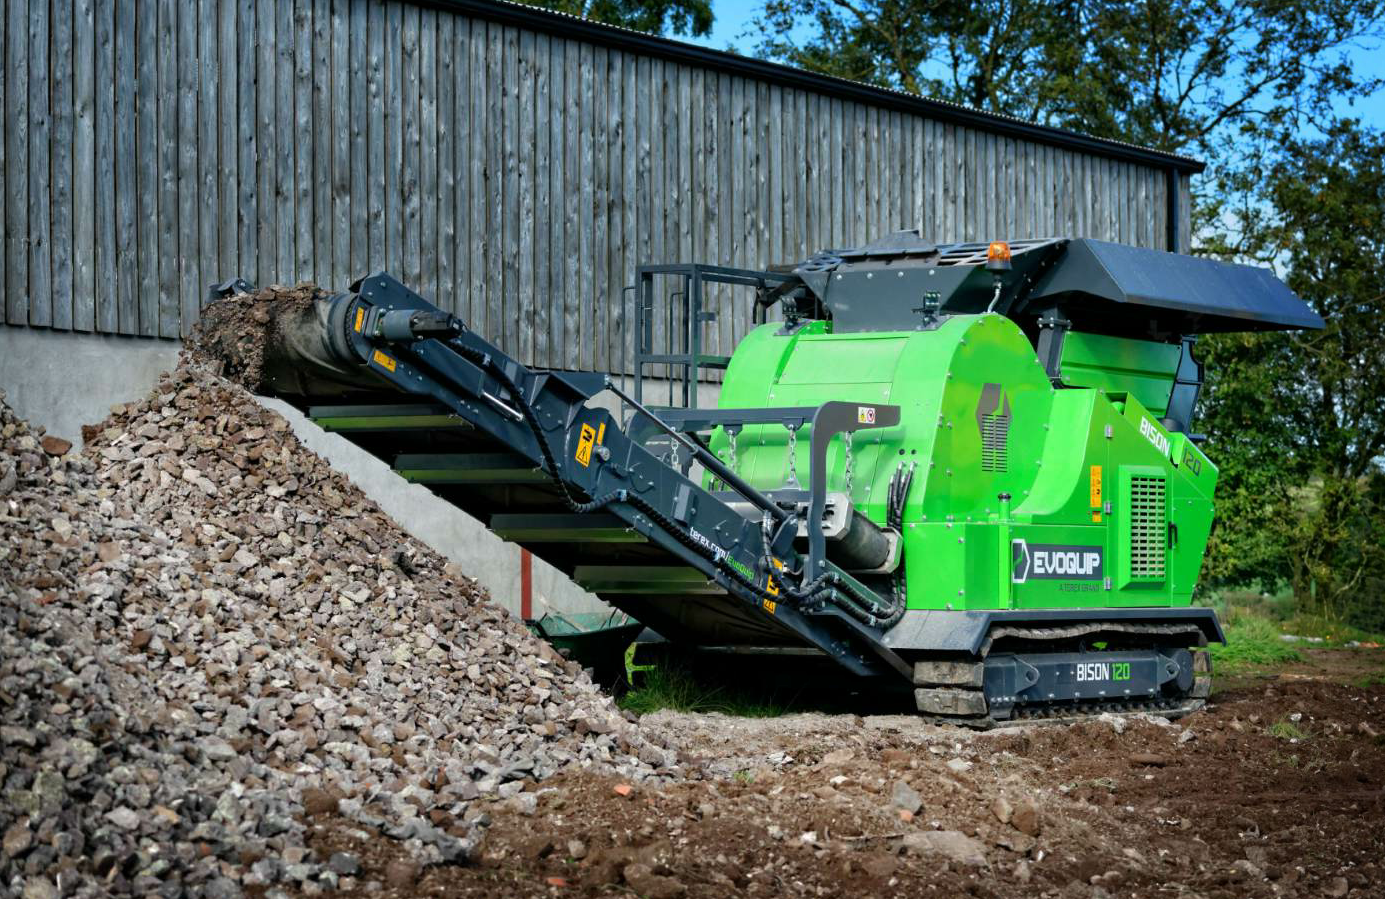 The Bison 120 jaw crusher from EvoQuip is one of the company's crushers designed to get the job done in confined job spaces. Photo courtesy Terex EvoQuip.